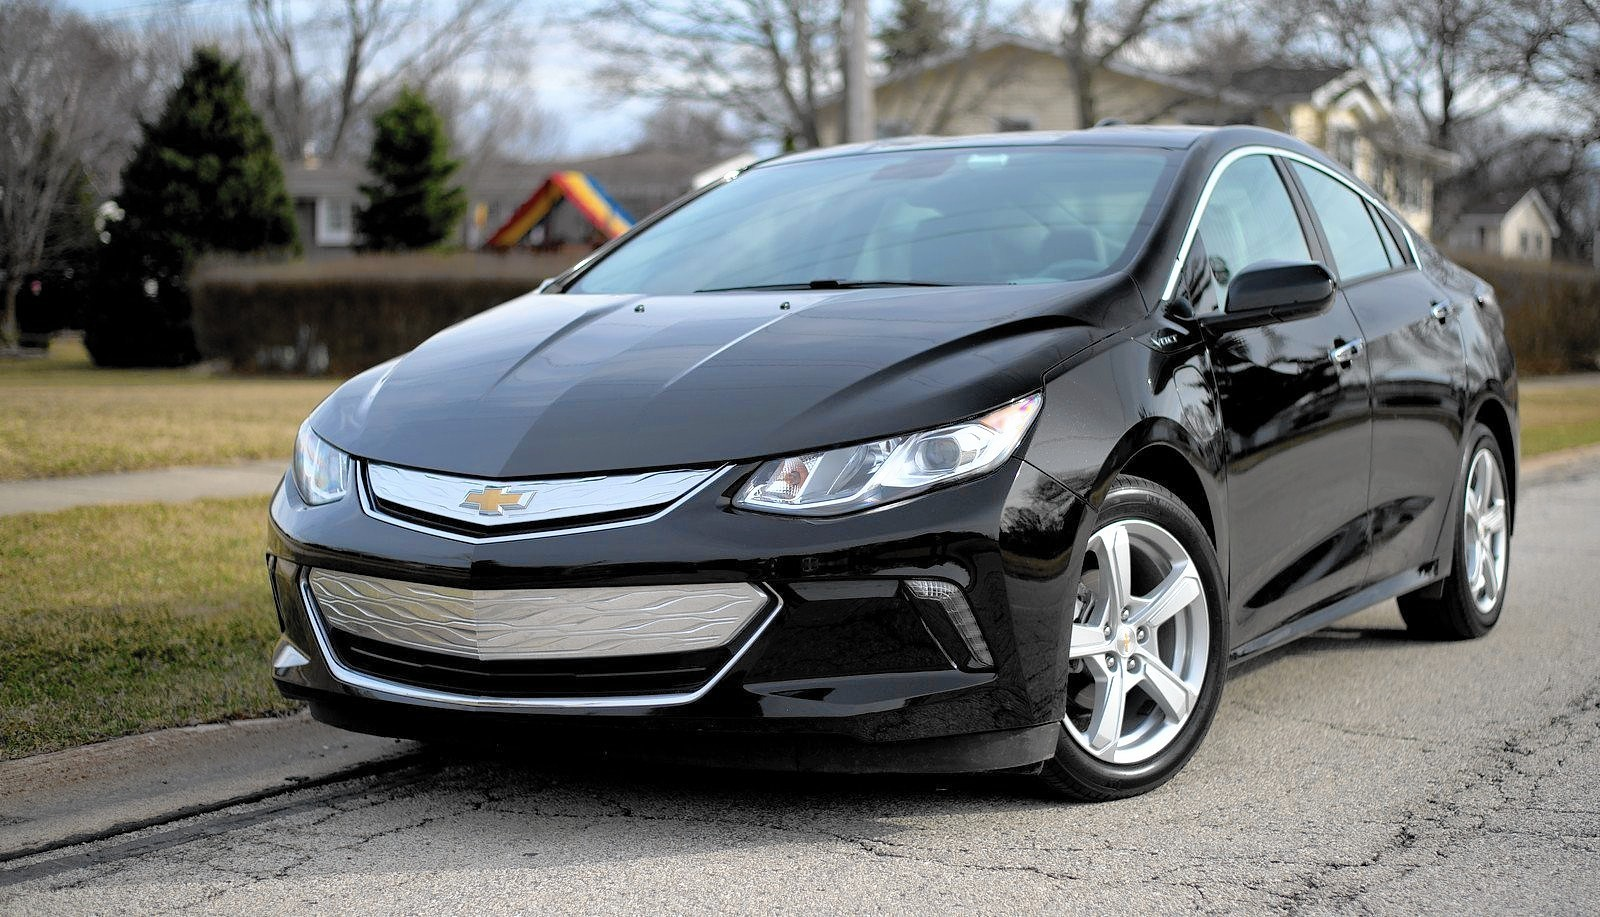 2016 chevrolet volt plug in hybrid charges ahead of competition chicago tribune. Black Bedroom Furniture Sets. Home Design Ideas